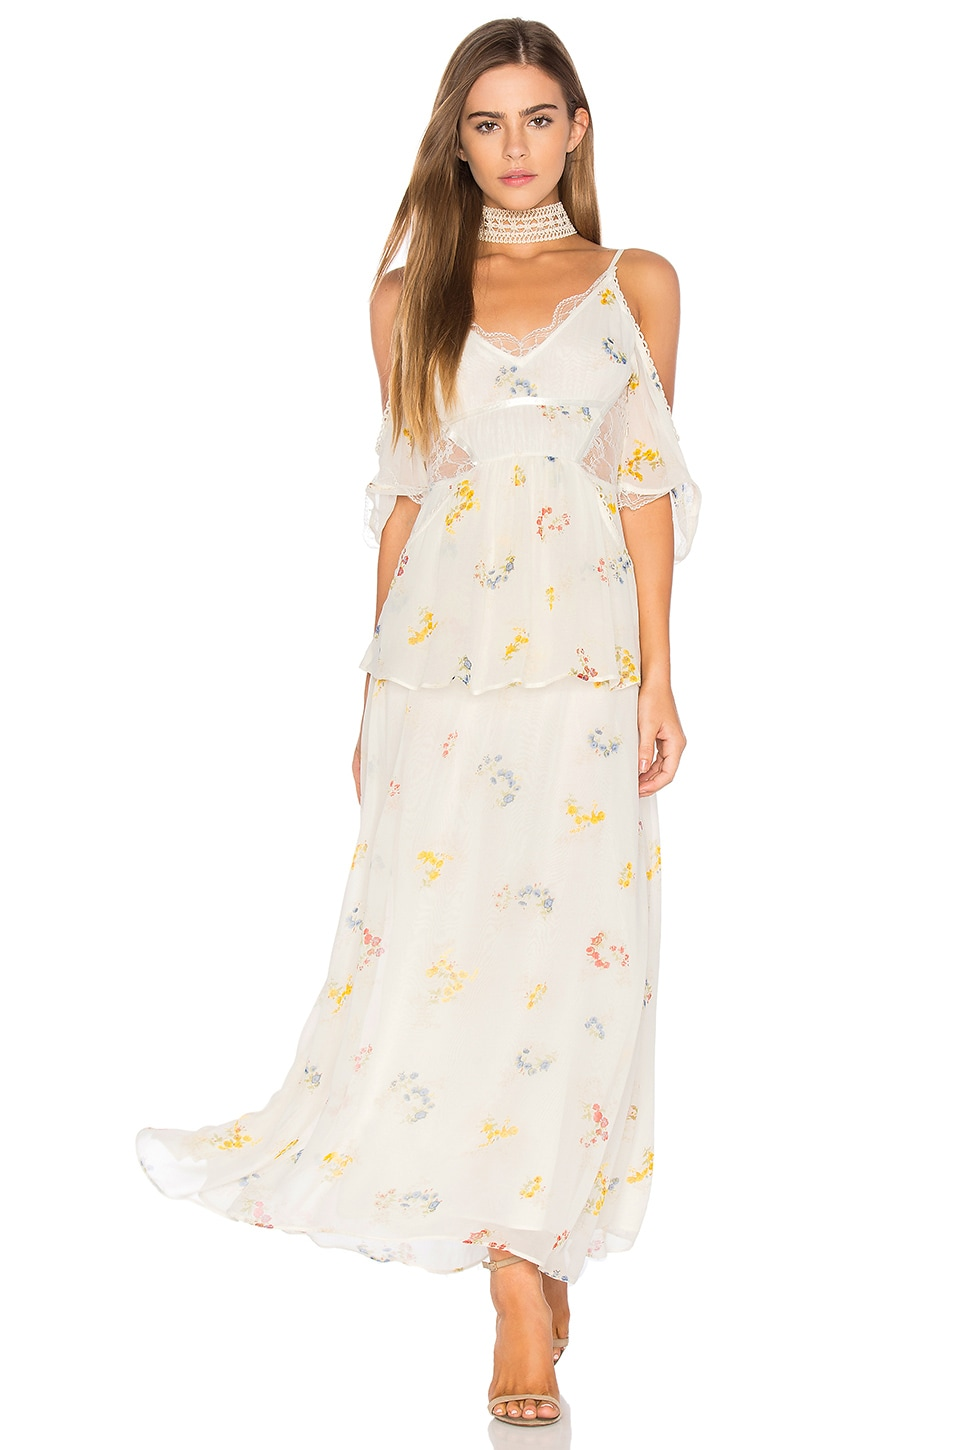 Free People Magnolia Maxi Dress in Ivory